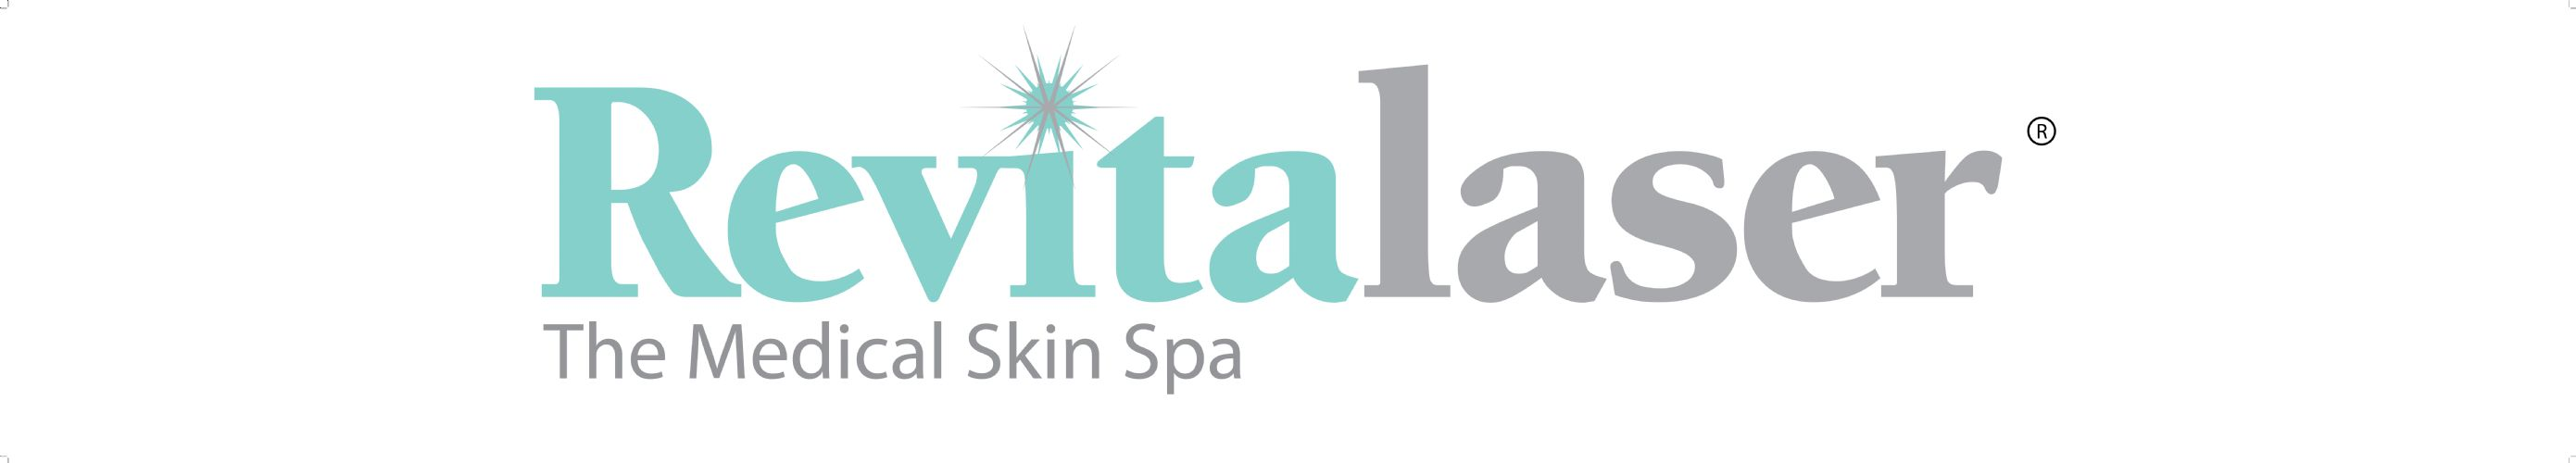 Revitalaser The Medical Skin Spa Banner